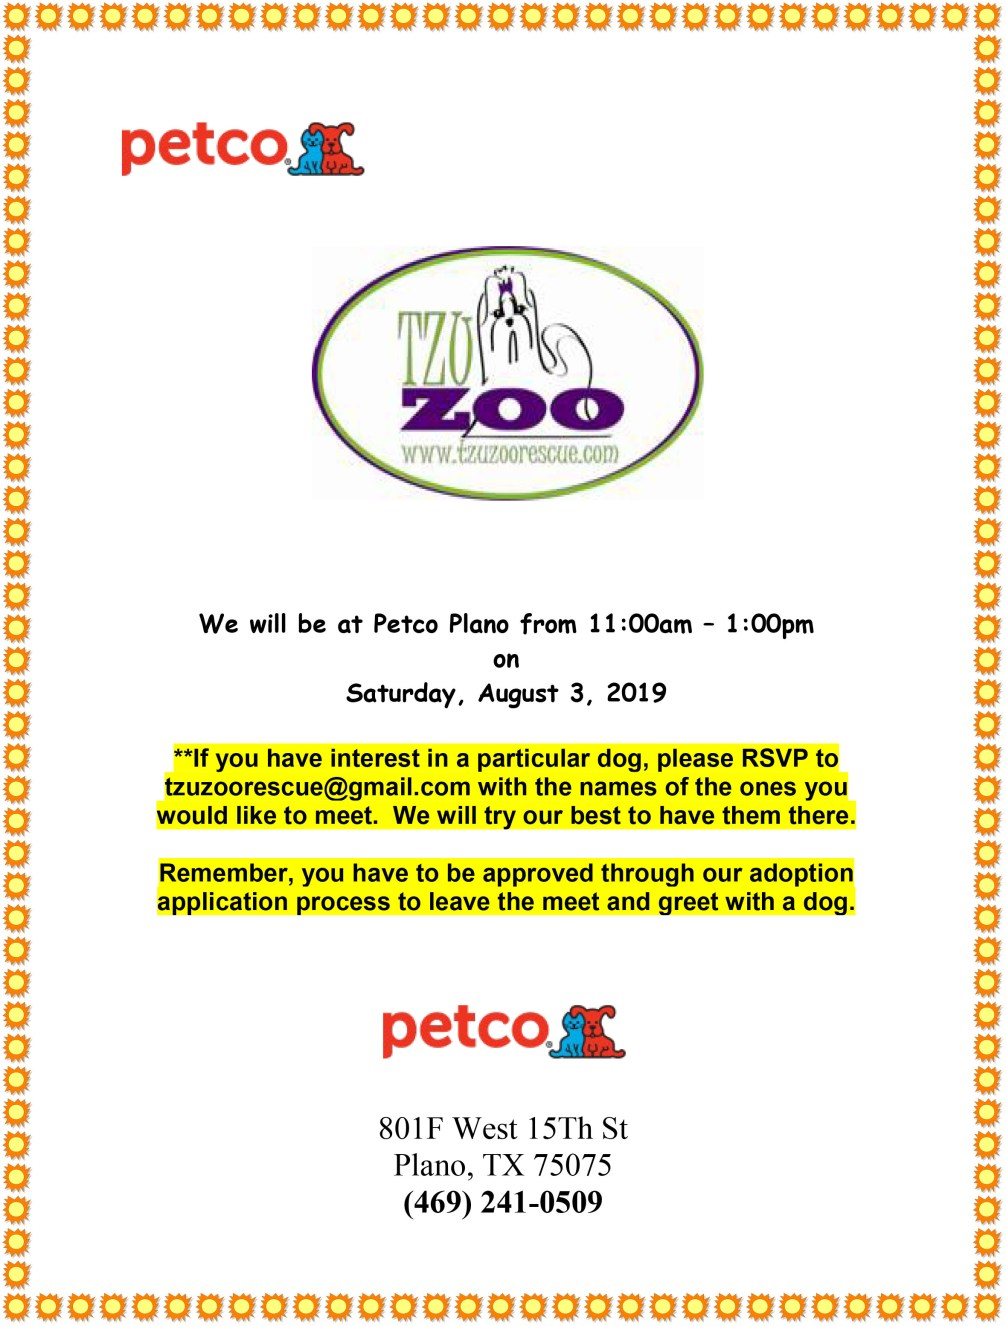 Meet & Greet, Petco-Plano